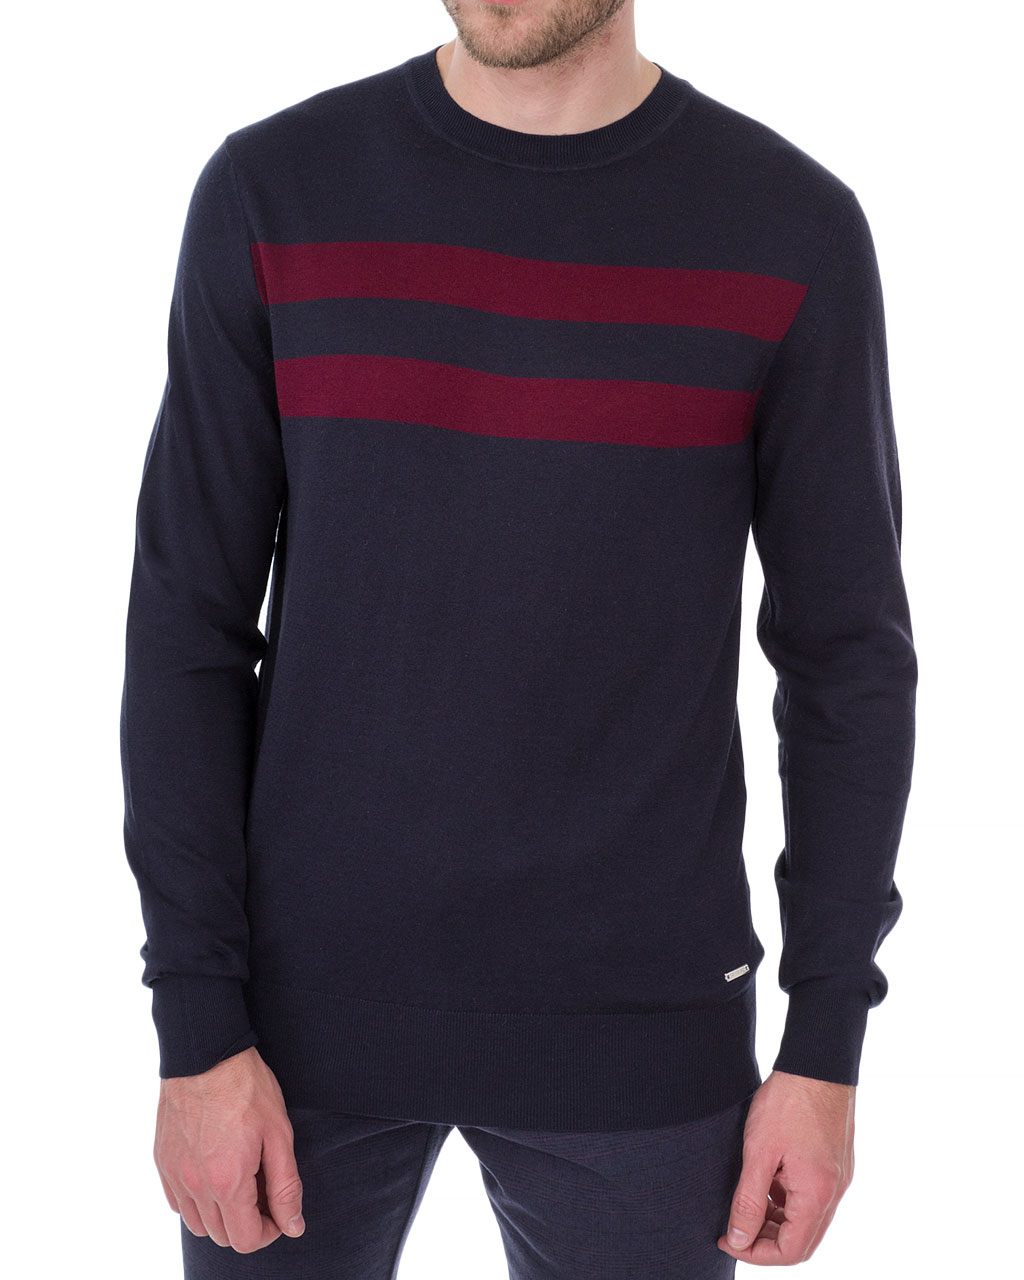 Men's jumper 1860-319/19-20 (1)